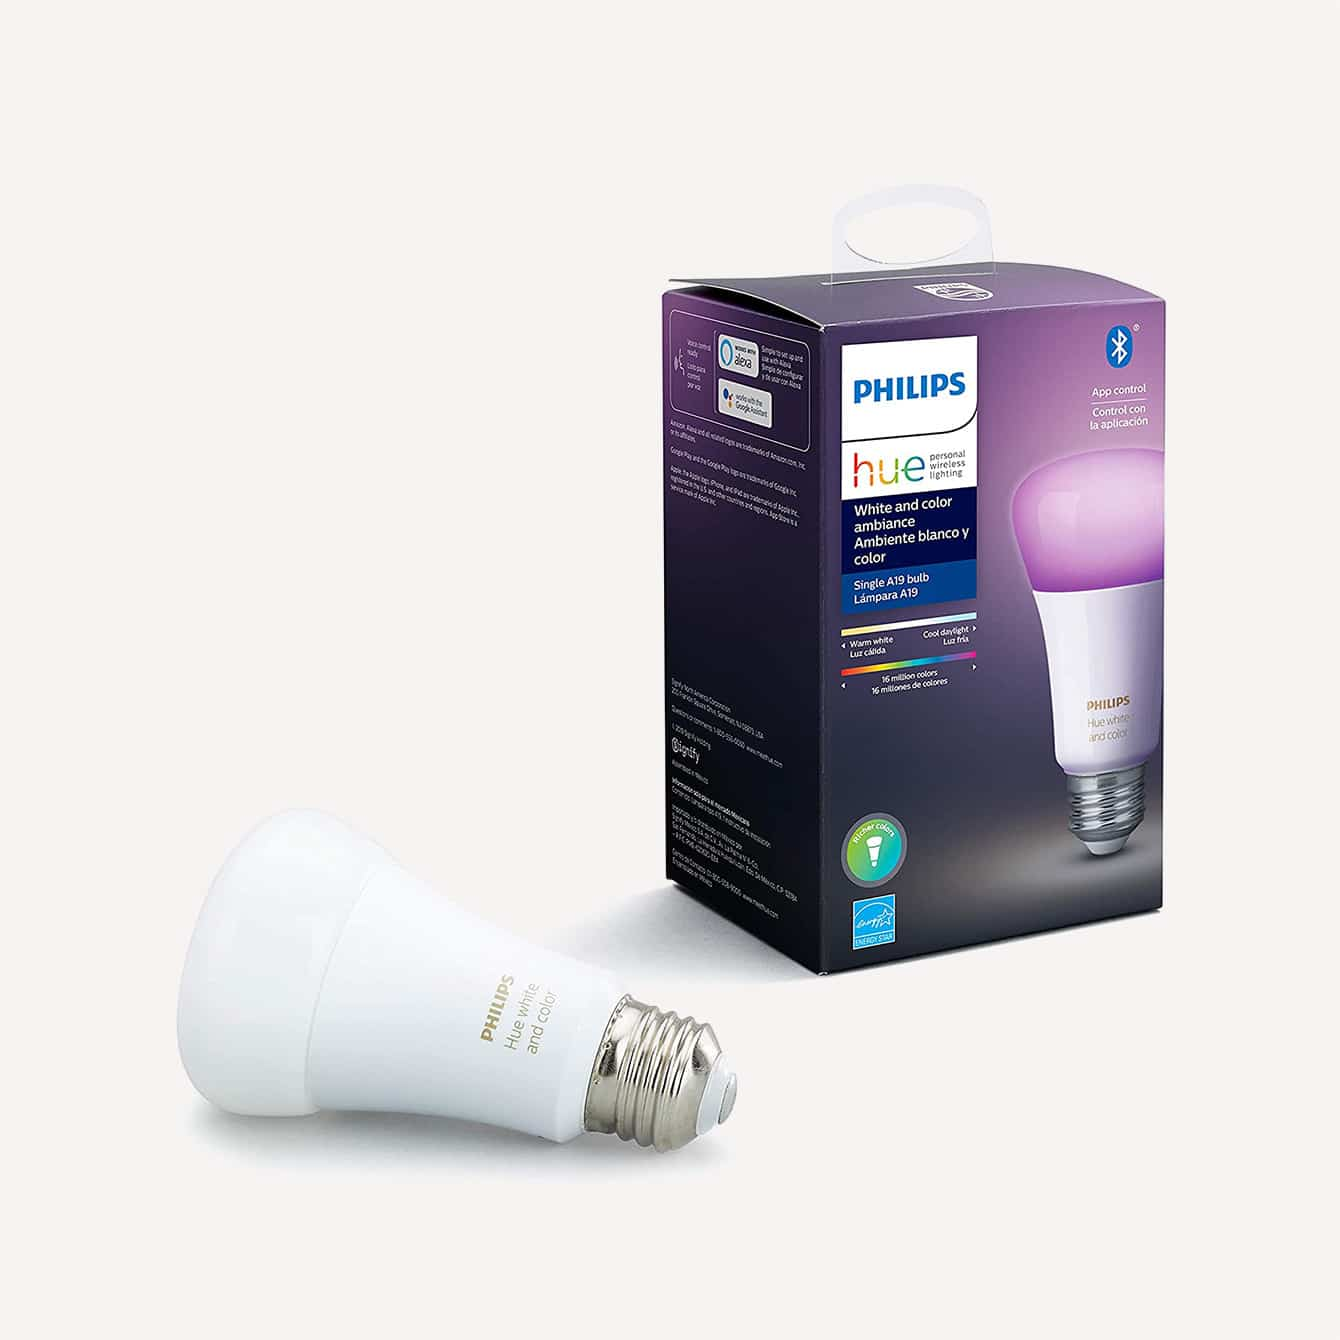 Philips Hue White and Color Ambiance A19 LED Smart Bulb